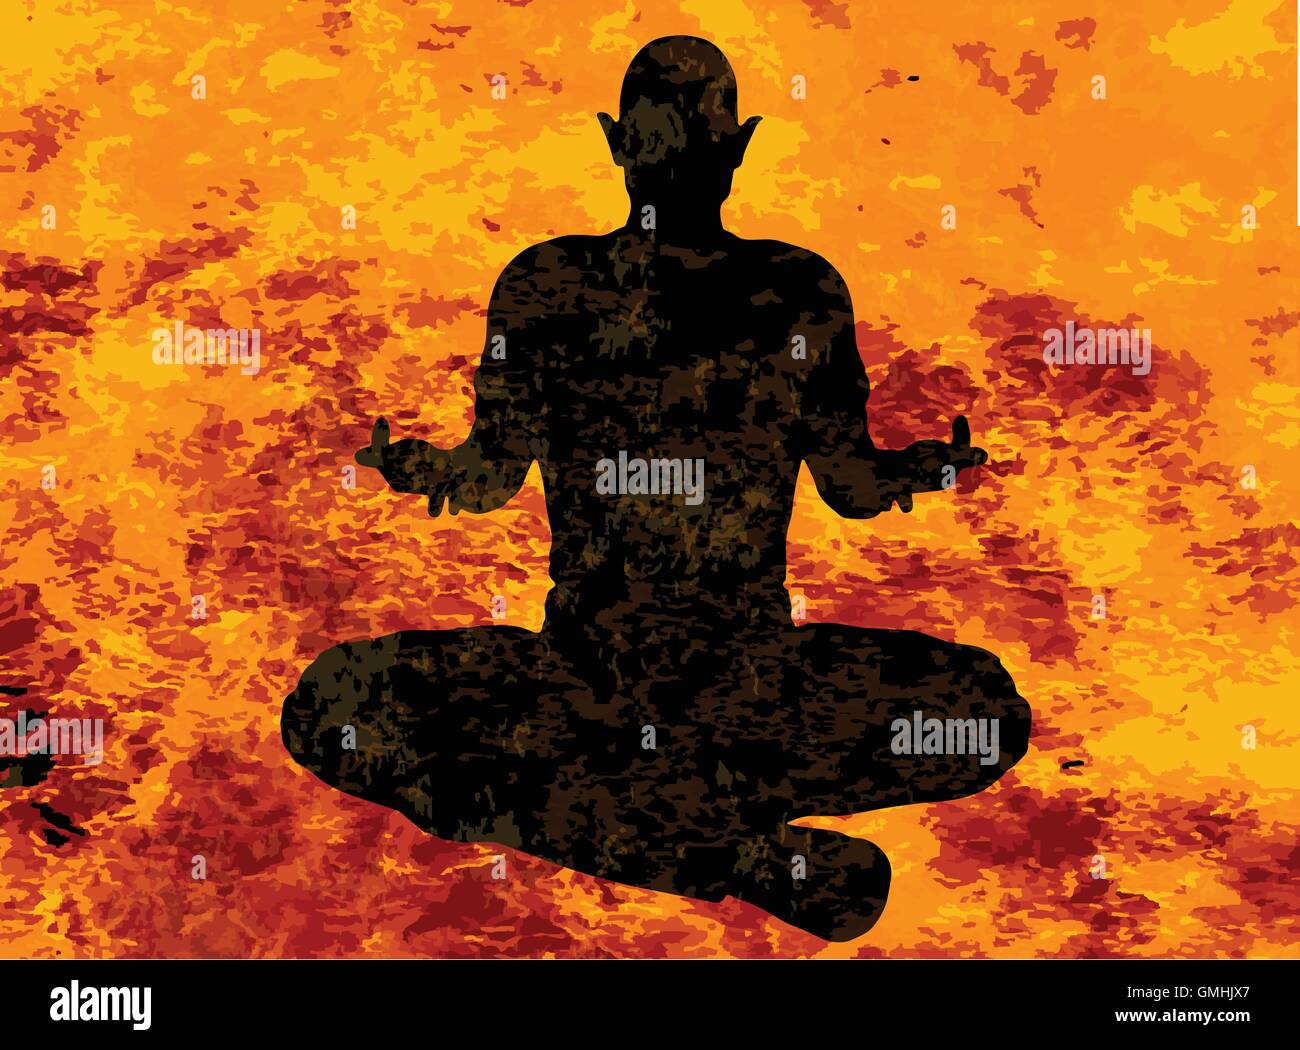 Yoga Floating Pose - Stock Vector